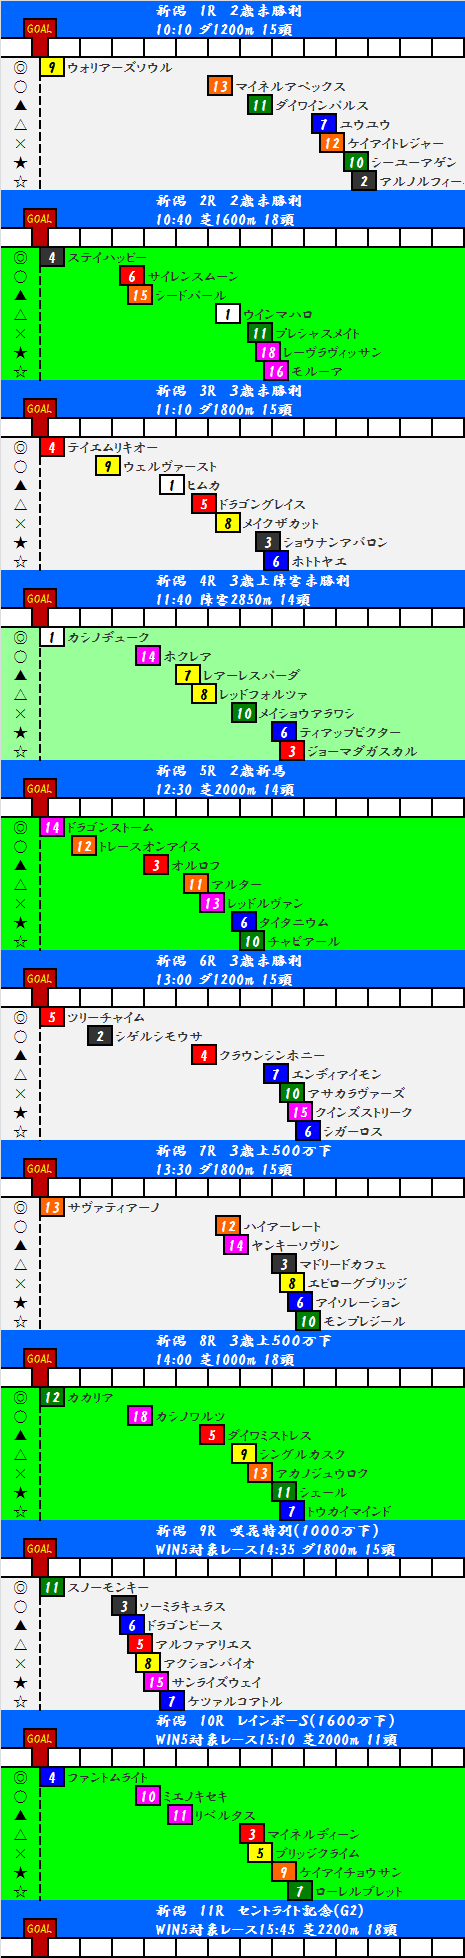 2014092101.png